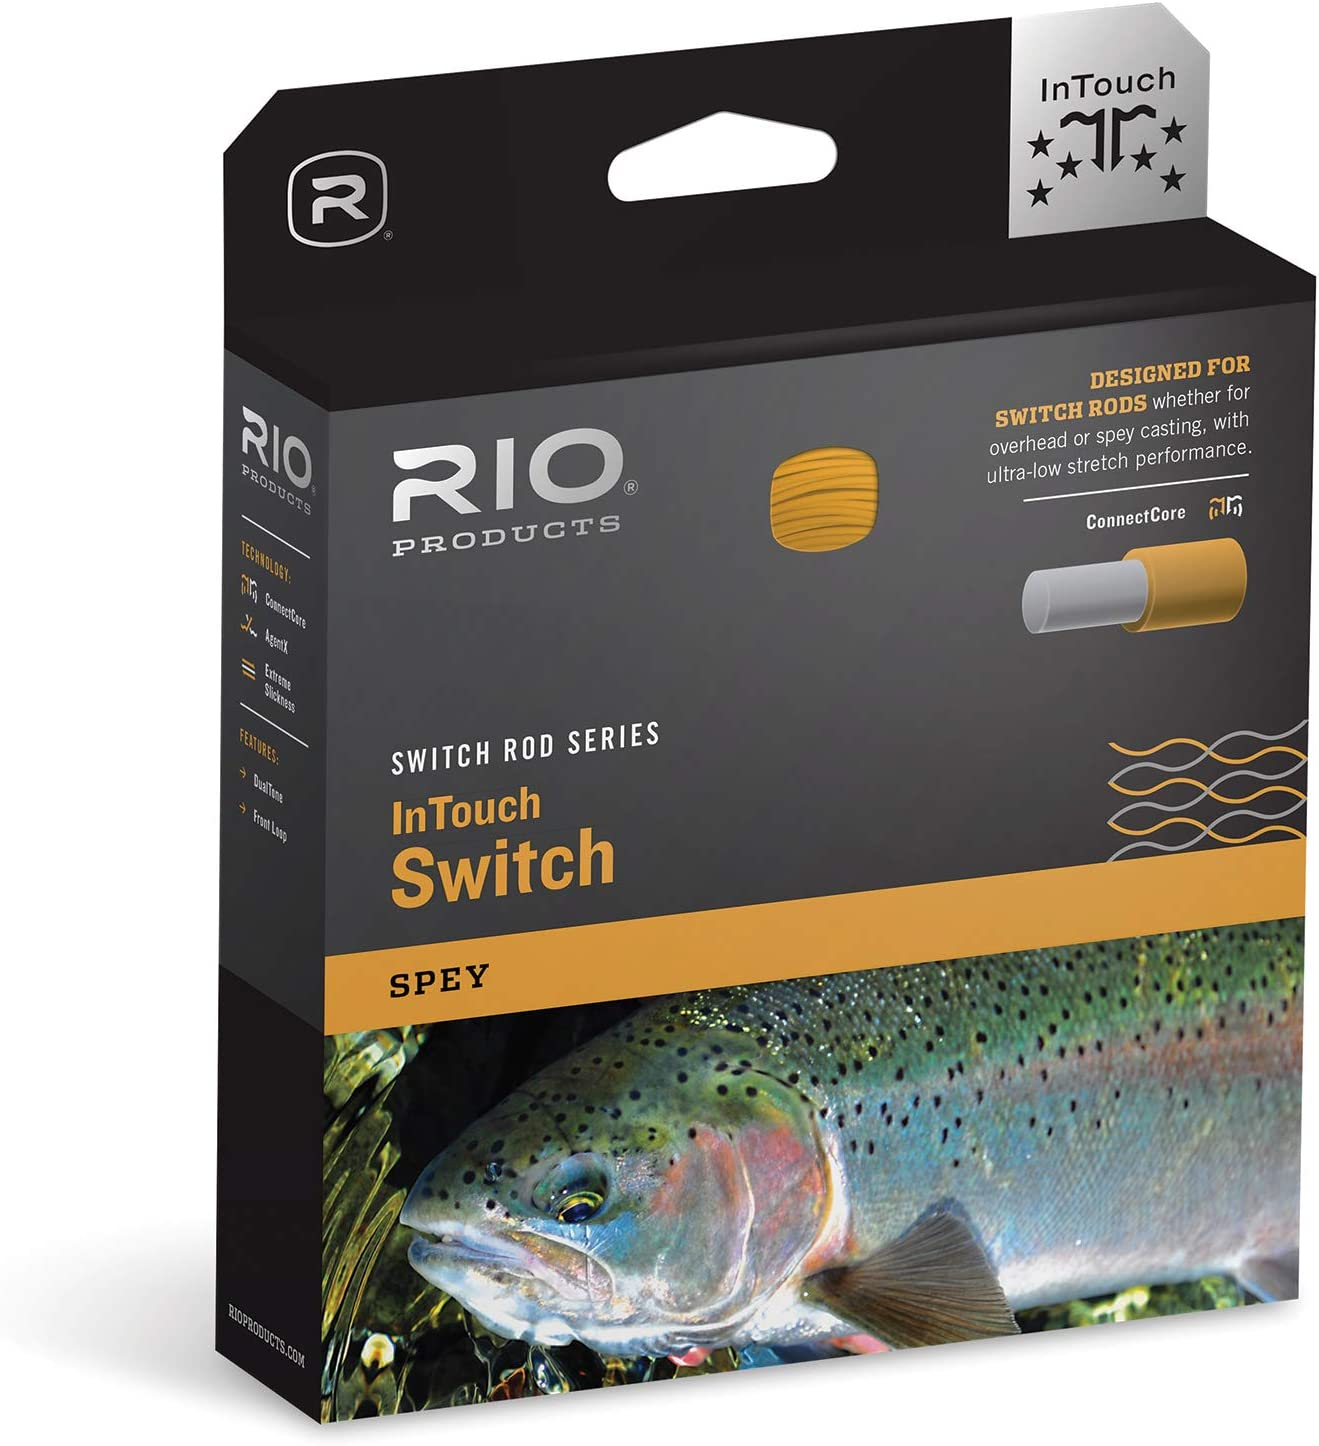 RIO Products InTouch Switch Chucker Fly Line